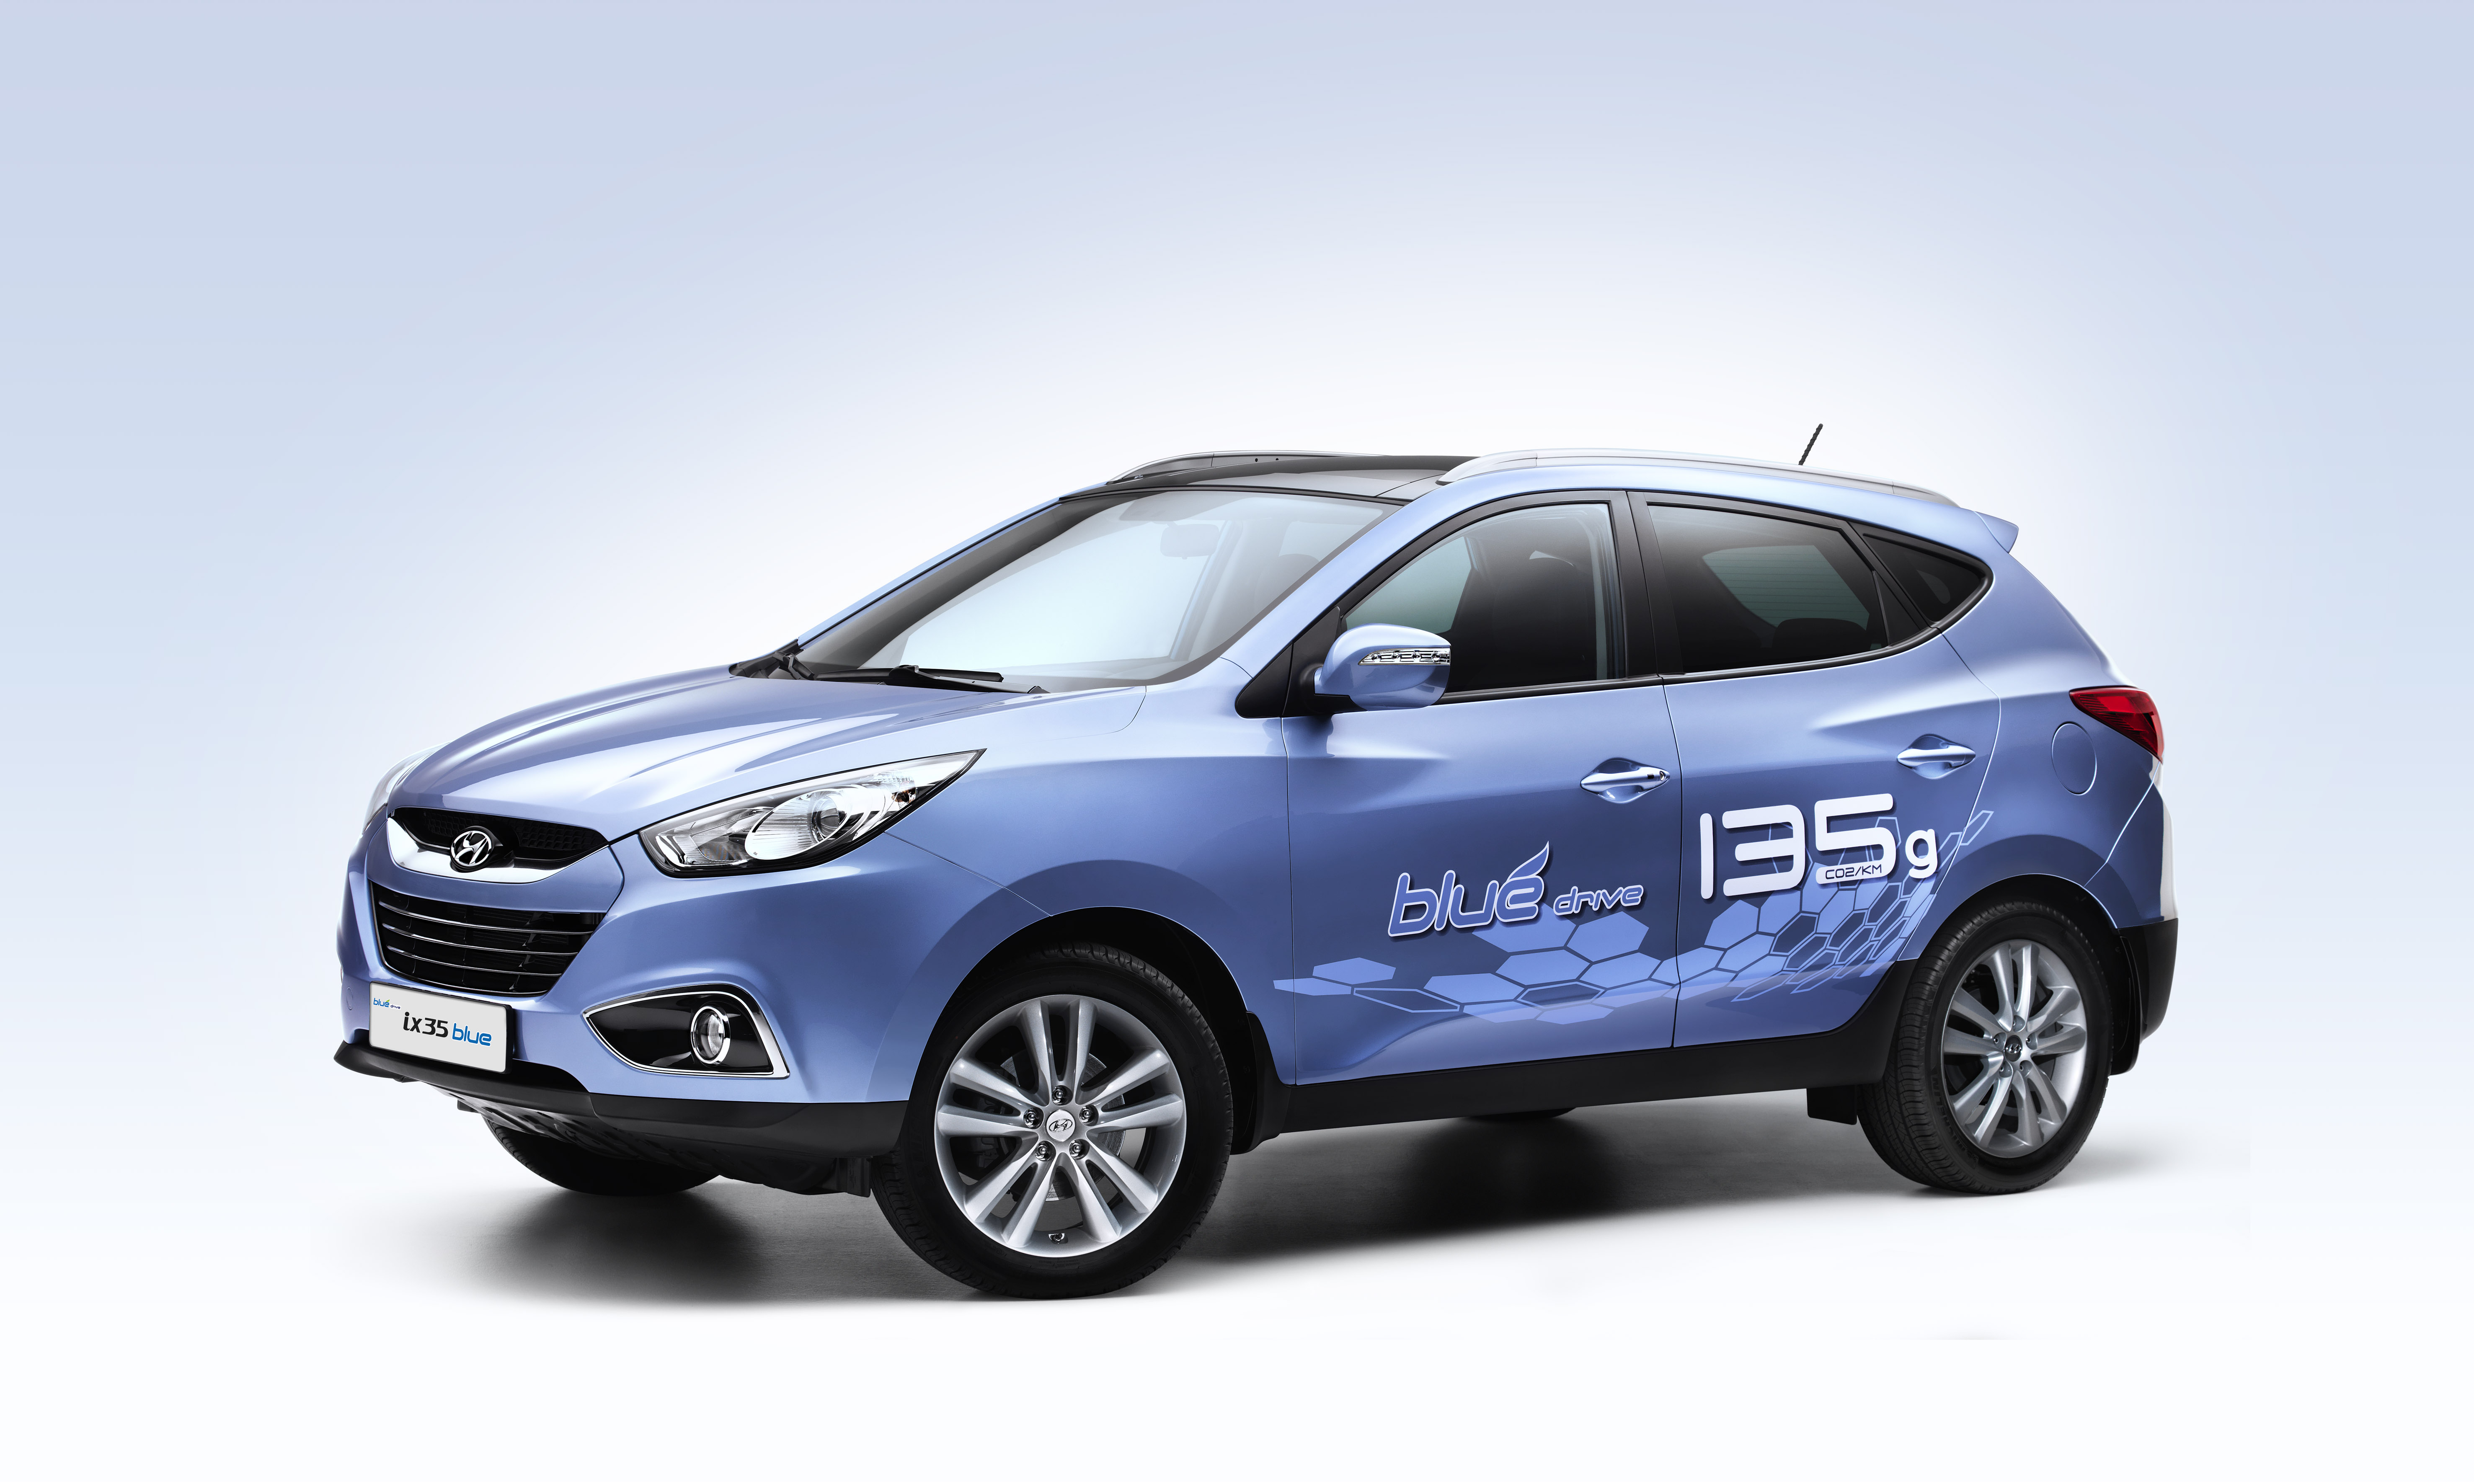 hyundai motor company Hyundai motor company is a leading automotive manufacturer who was ranked first in a jd power vehicle dependability survey for three years straight in 2010 founded in 1967 and headquartered in seoul, korea, hyundai sells over 35 million cars per year.